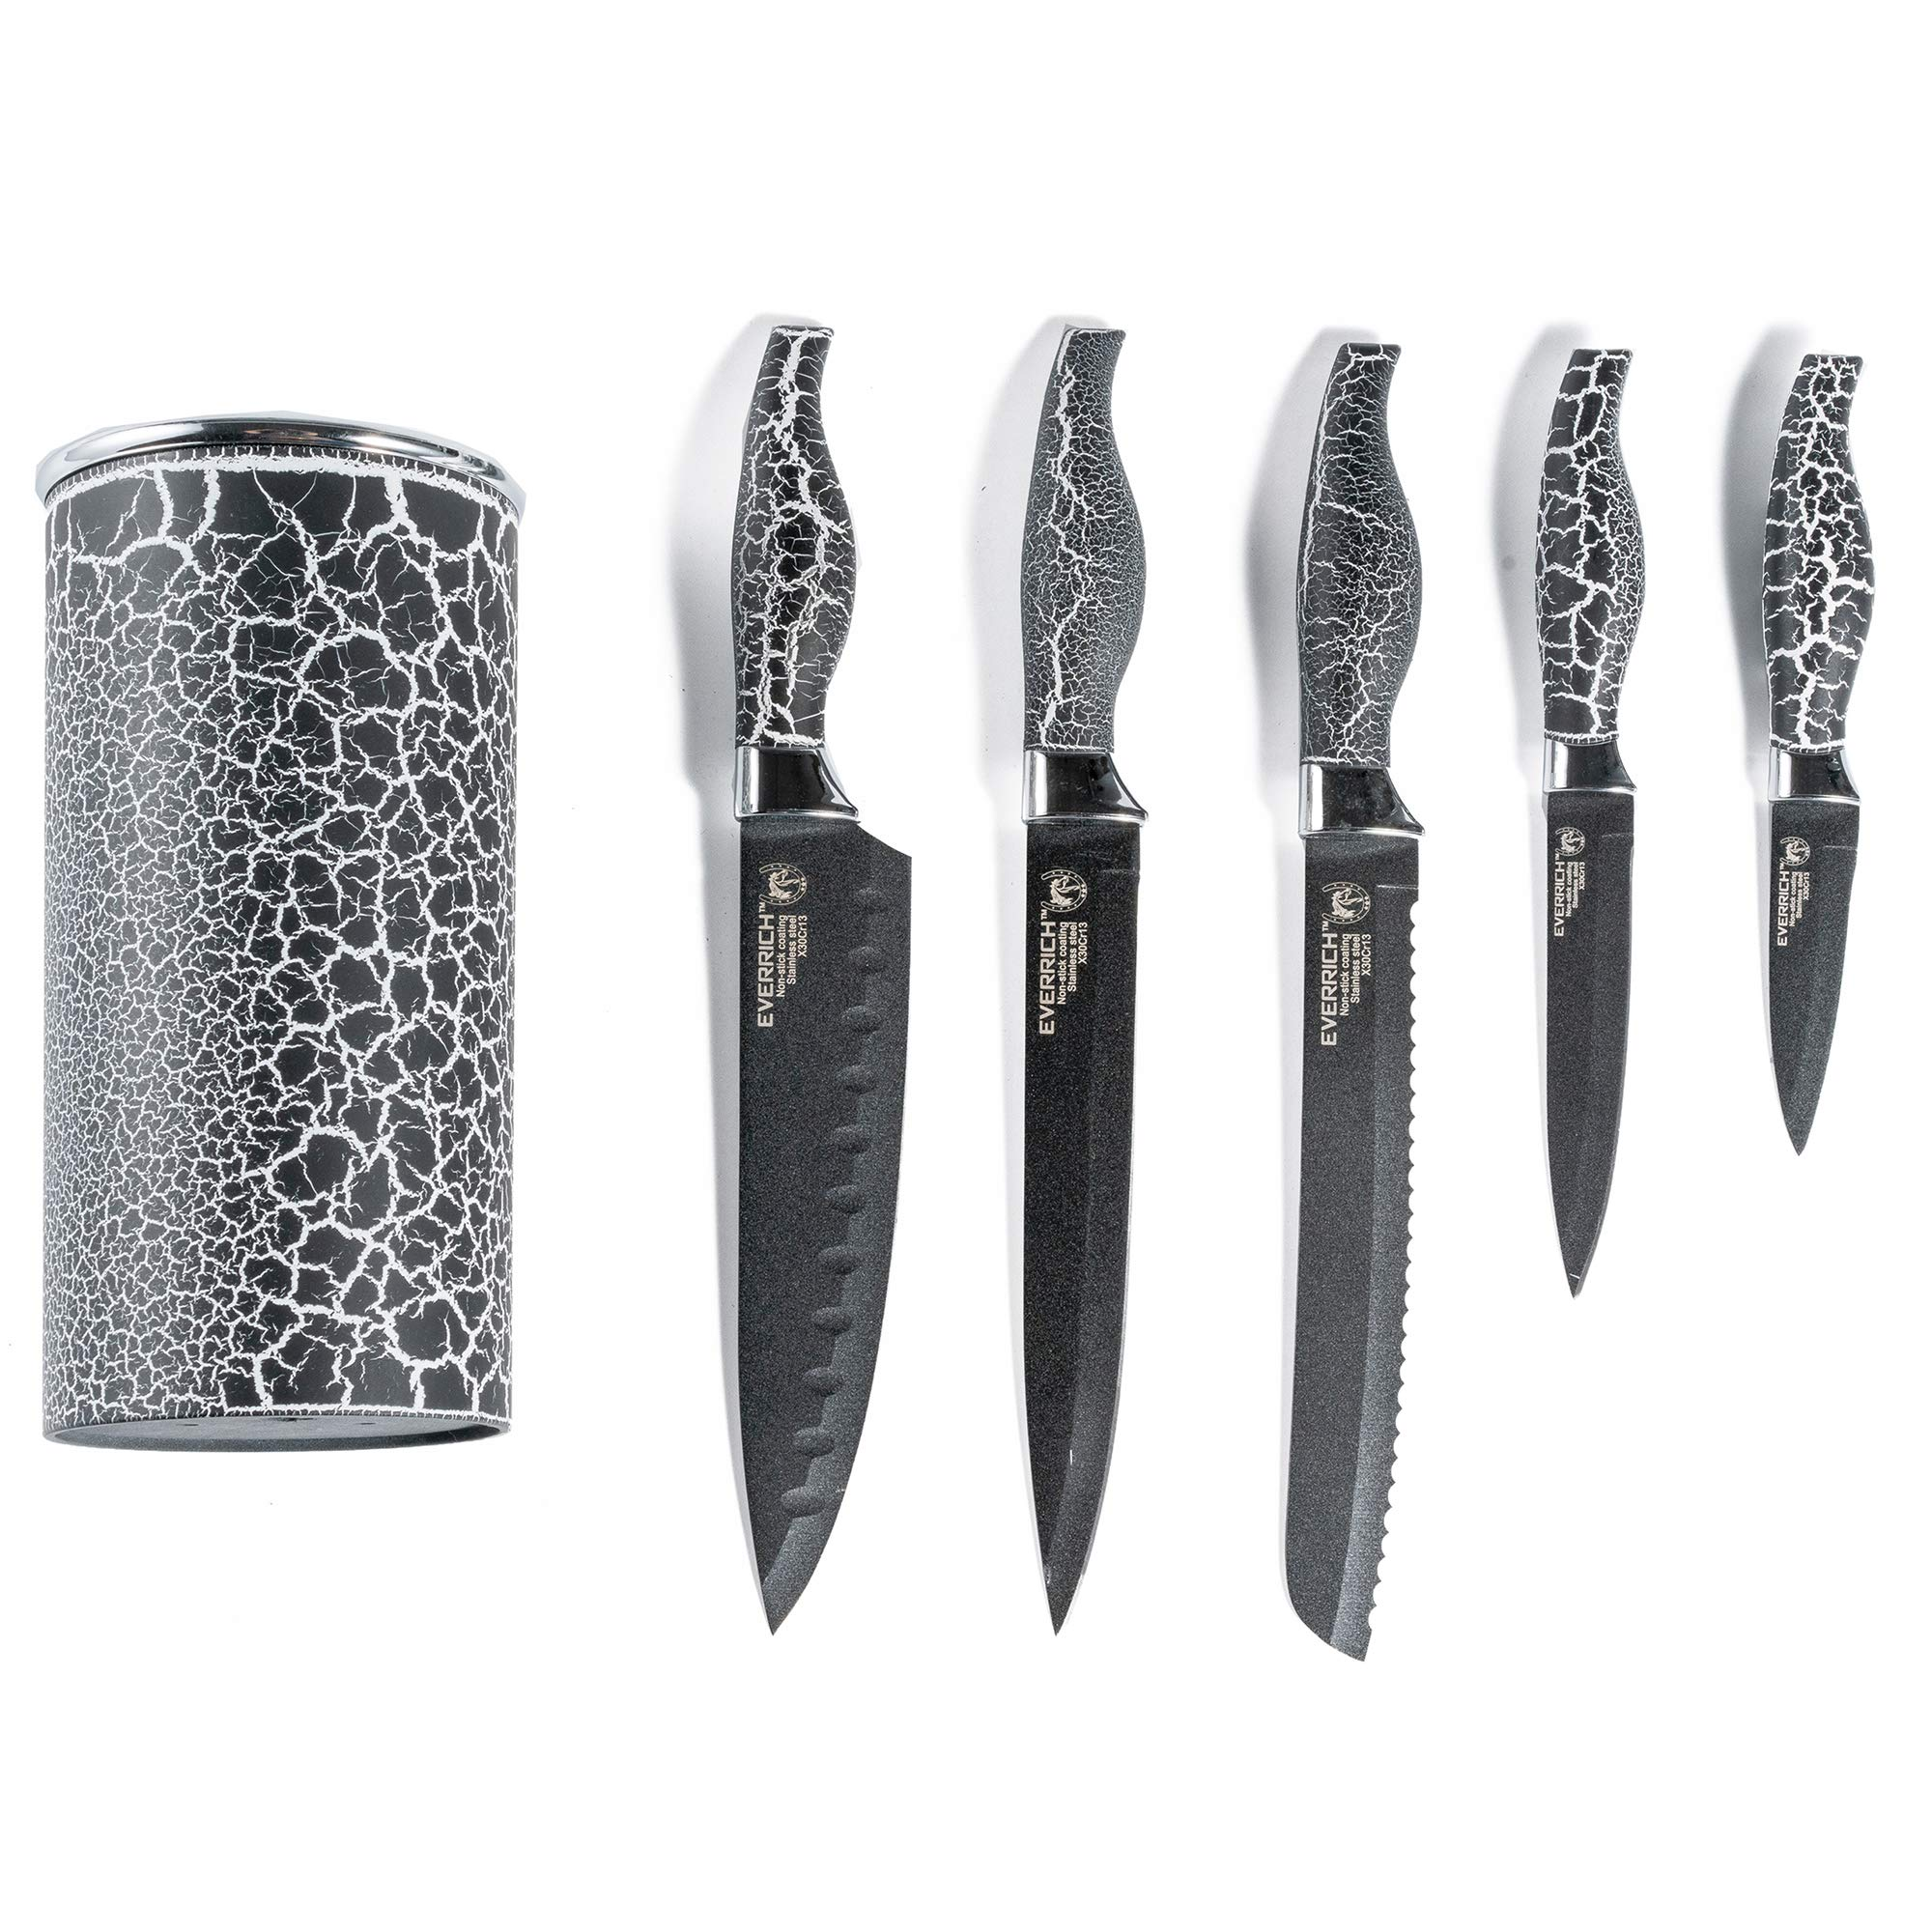 Sturdy and Stylish Knife Set!